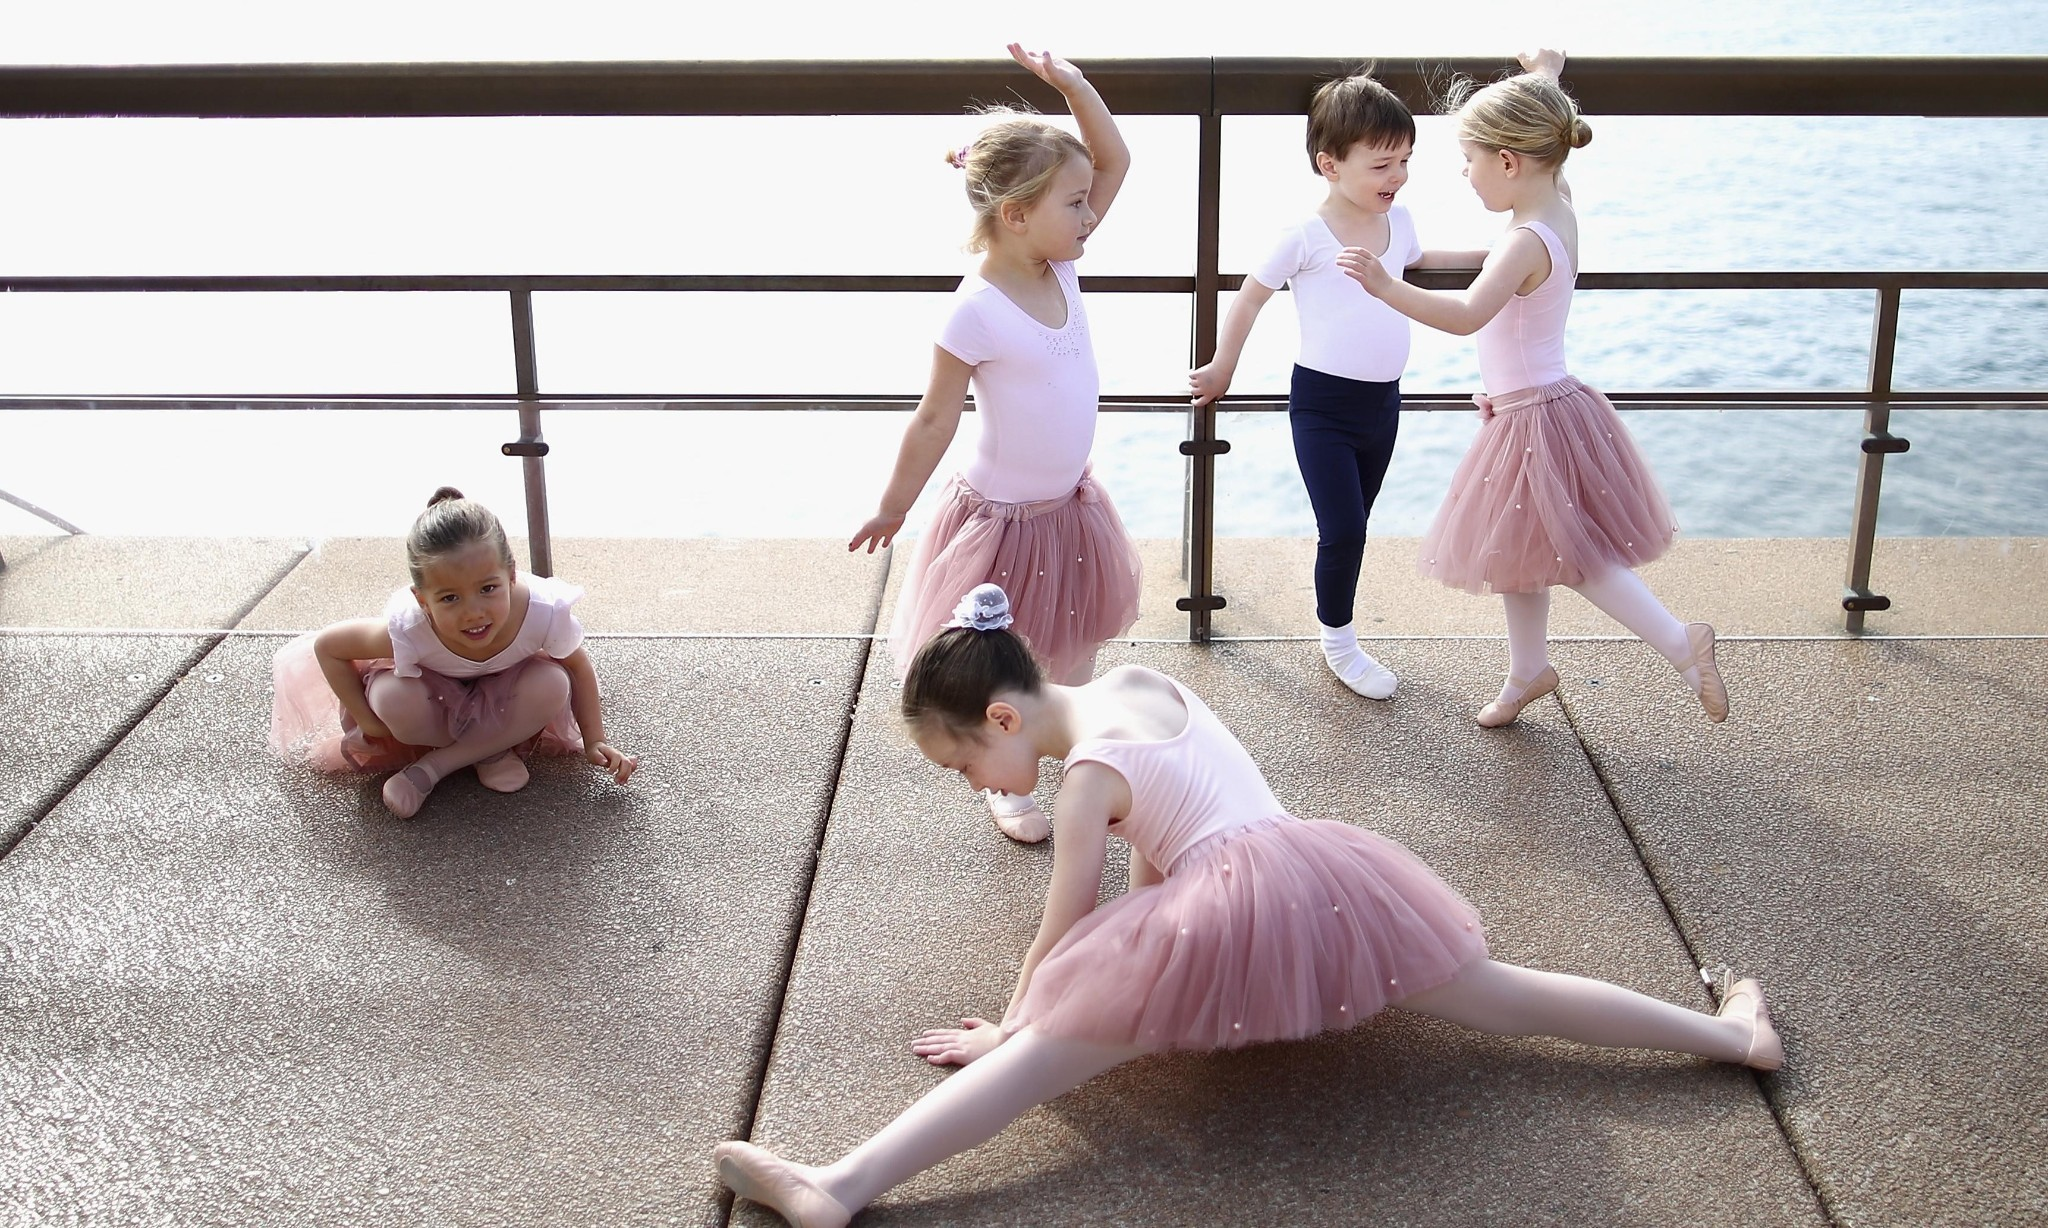 Science classes won't future-proof our children. But dance might